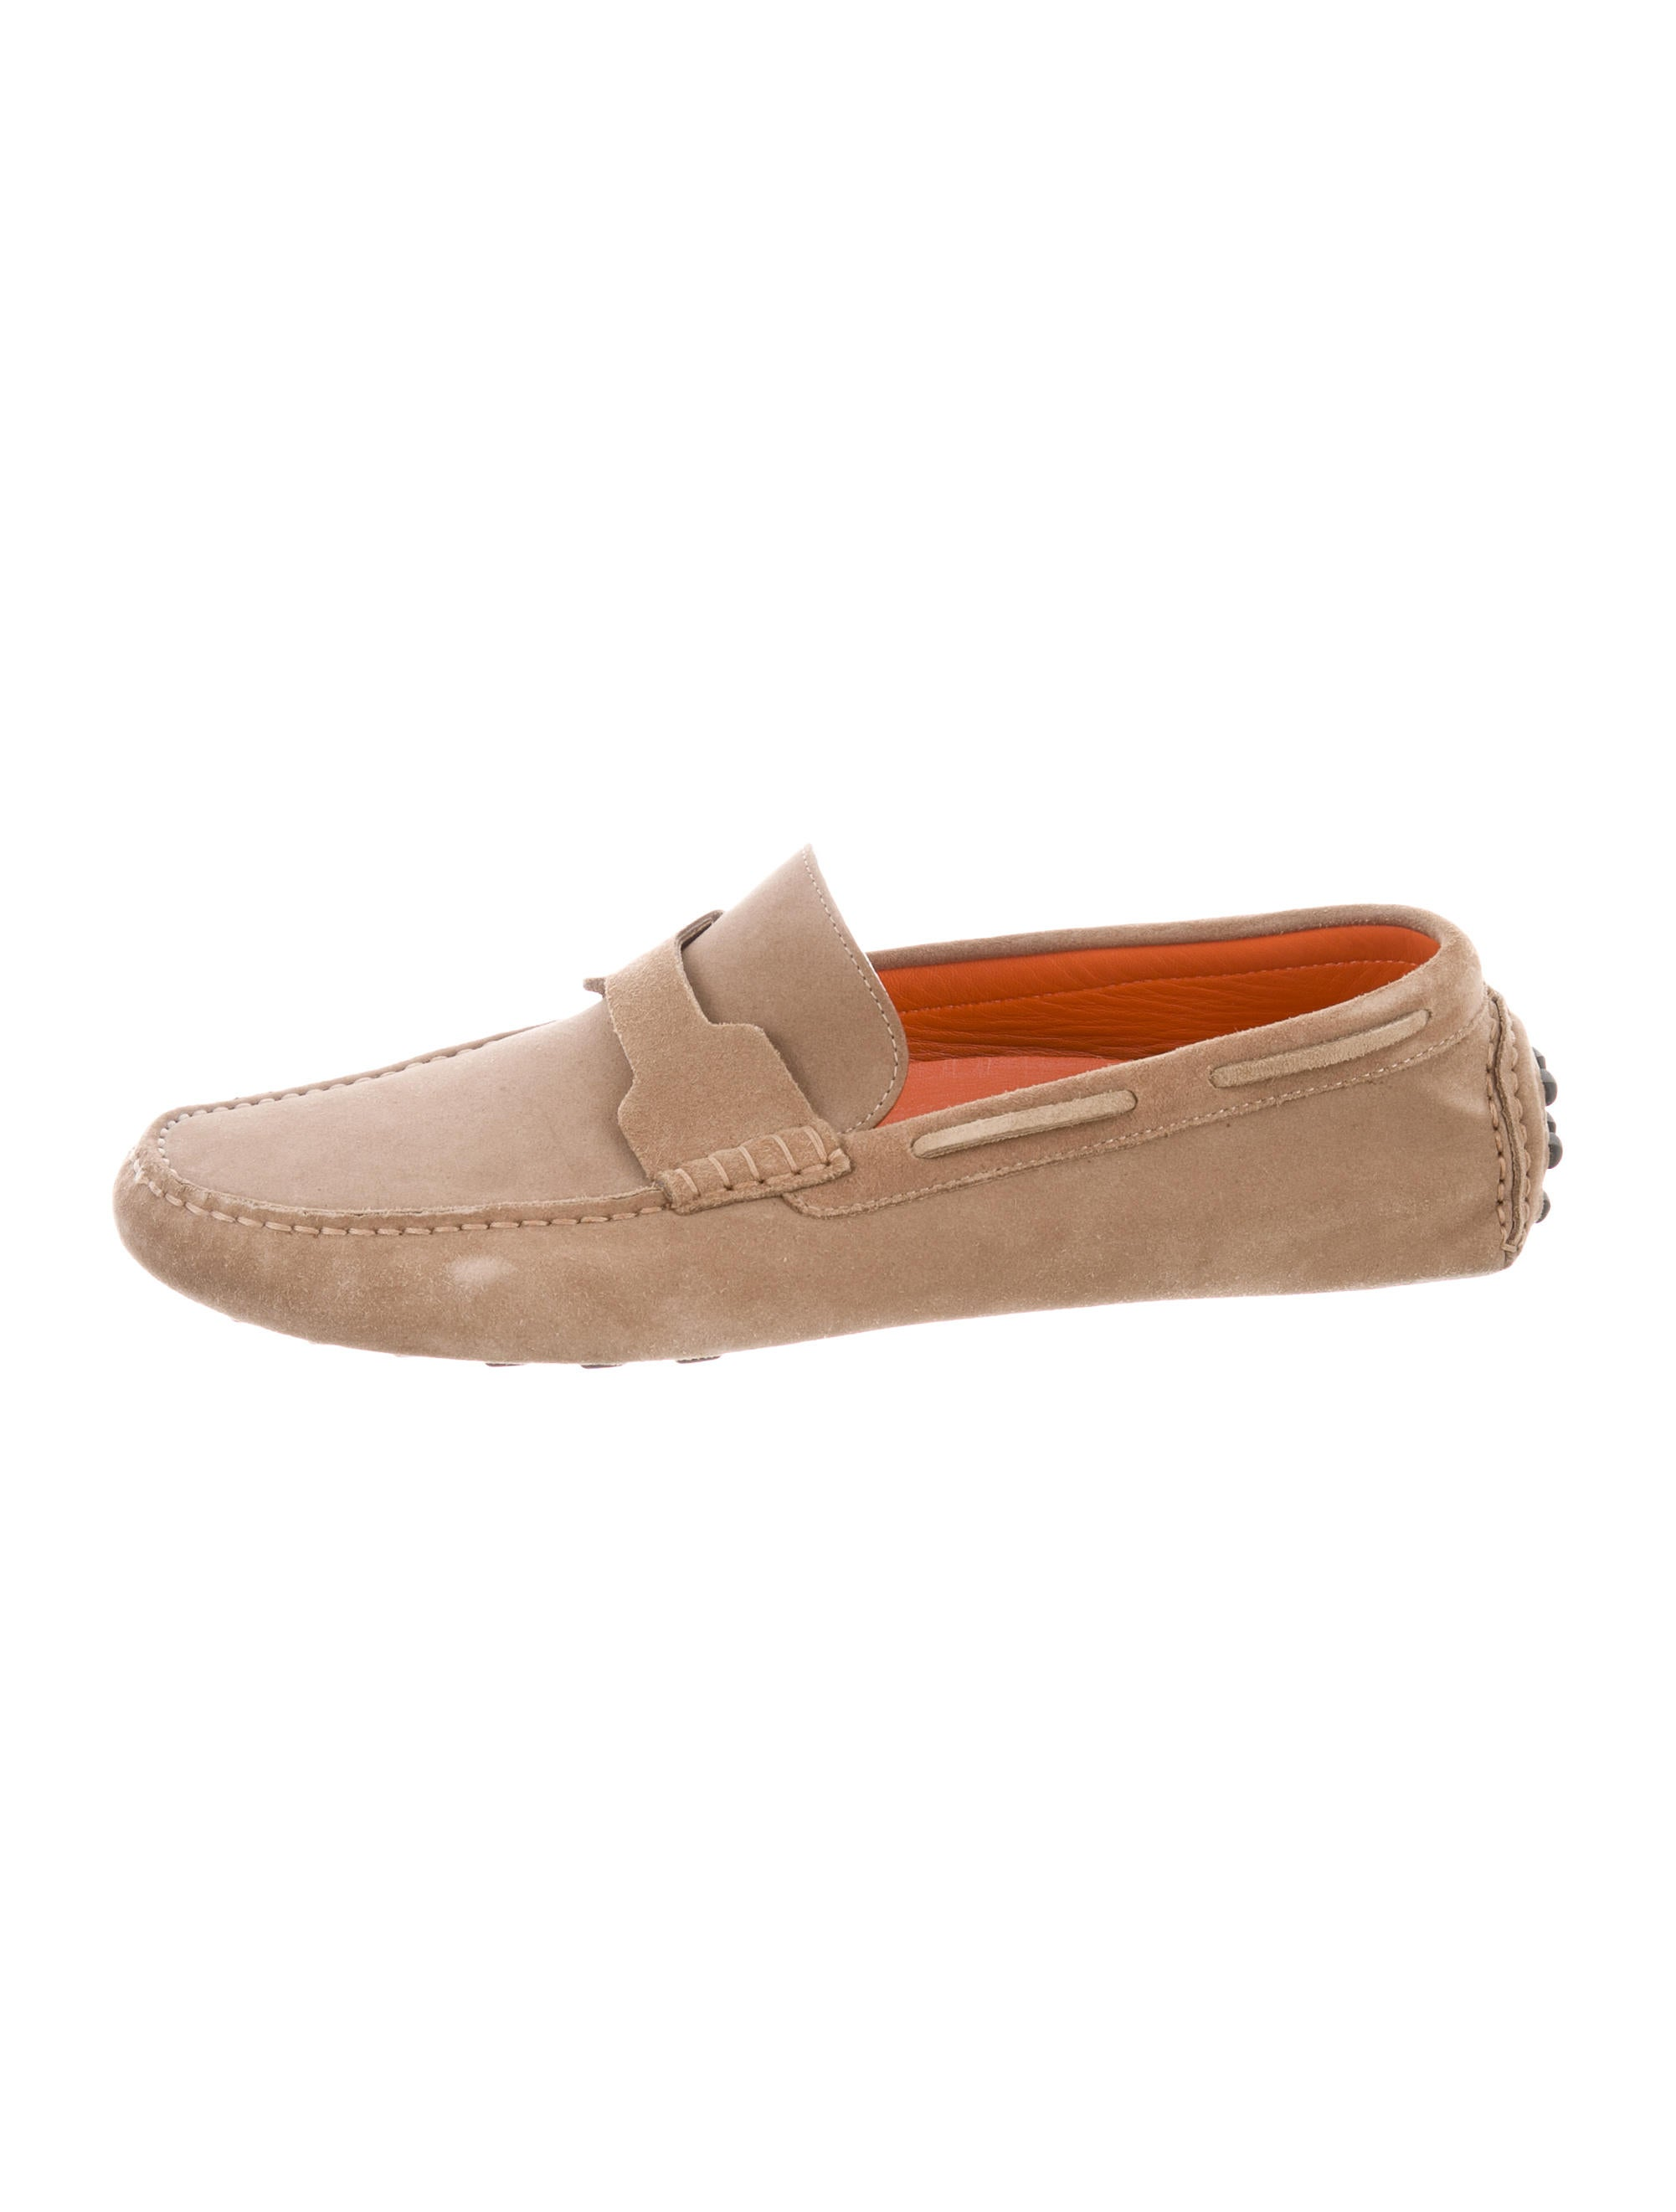 Hermu00e8s Suede Driving Loafers - Shoes - HER103647 | The ...